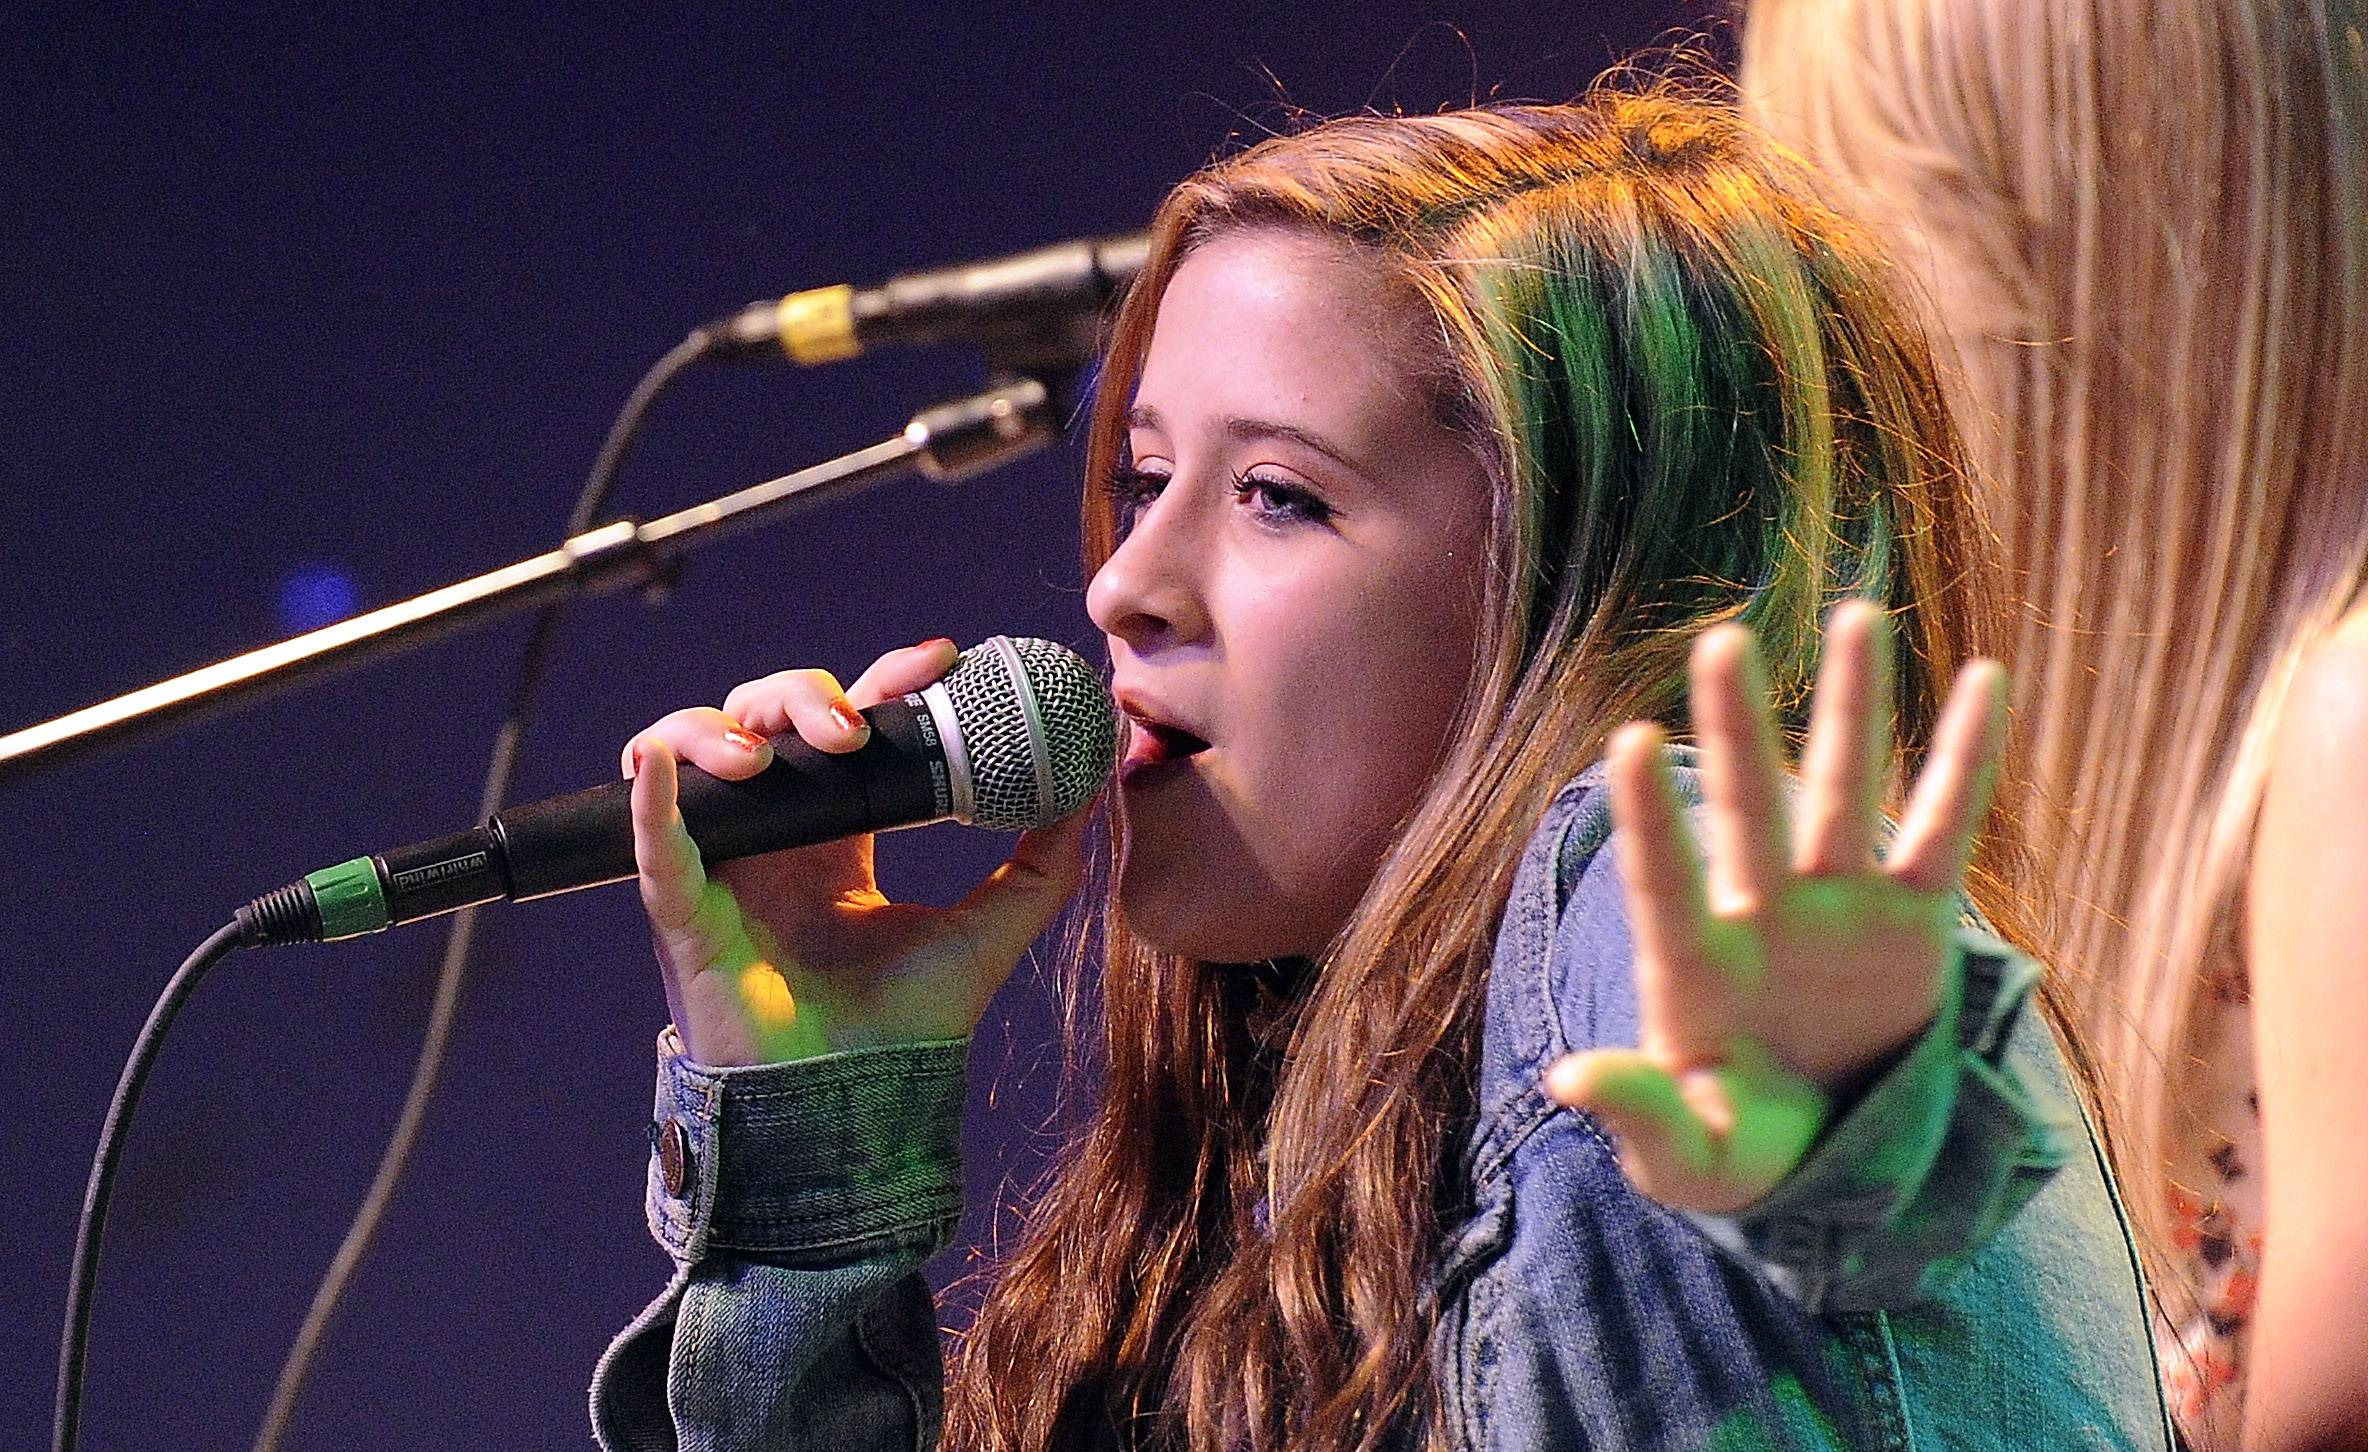 Serendipity band member and lead singer Josie Treffy, 15, of South Elgin, sings for her fans at Durty Nellie's in Palatine.